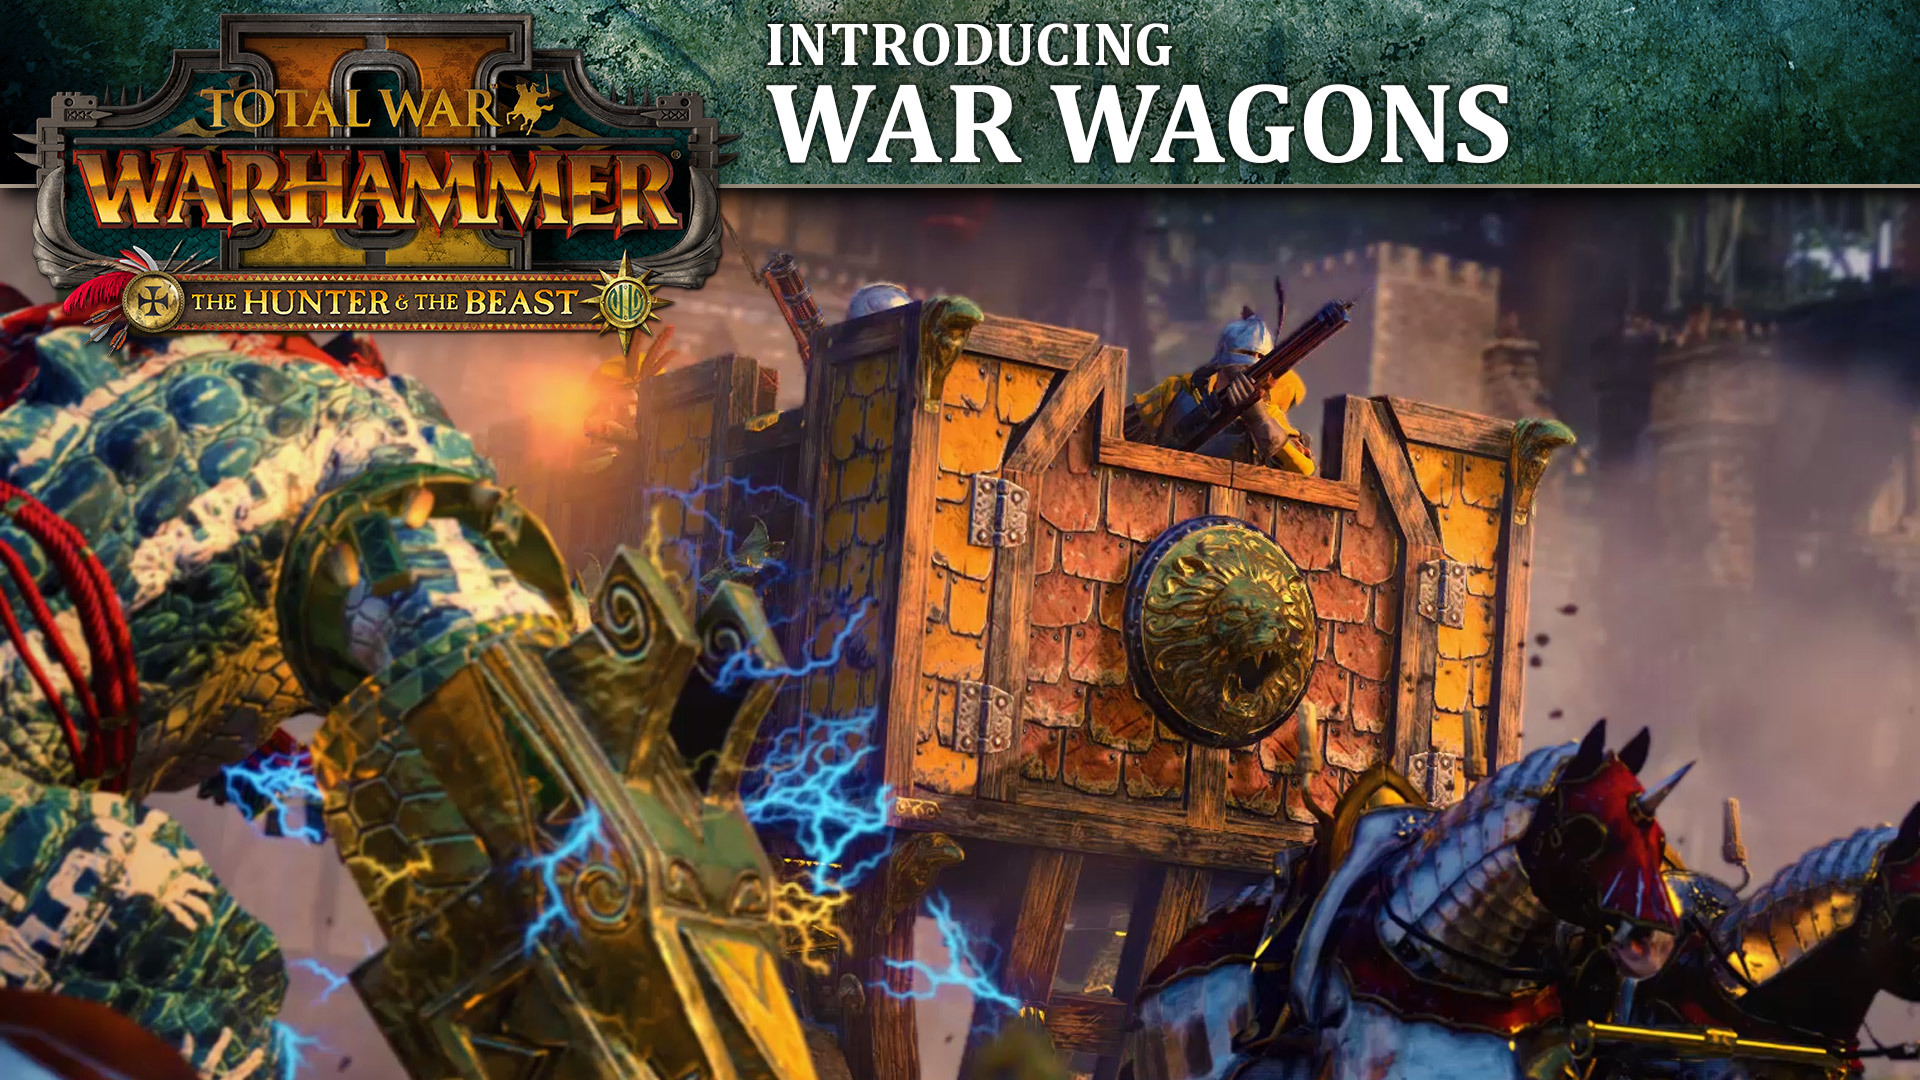 Sep 5 2019 Introducing War Wagons Total War Warhammer Ii Ca Ella Introducing War Wagons Mobile Battle Towers Outfitted With A Number Of Death Dealing Instruments Whether Equipped With Handgunners Mortars Or A Helblaster Volley Gun Soyo yu / the wanderer. total war warhammer ii ca ella